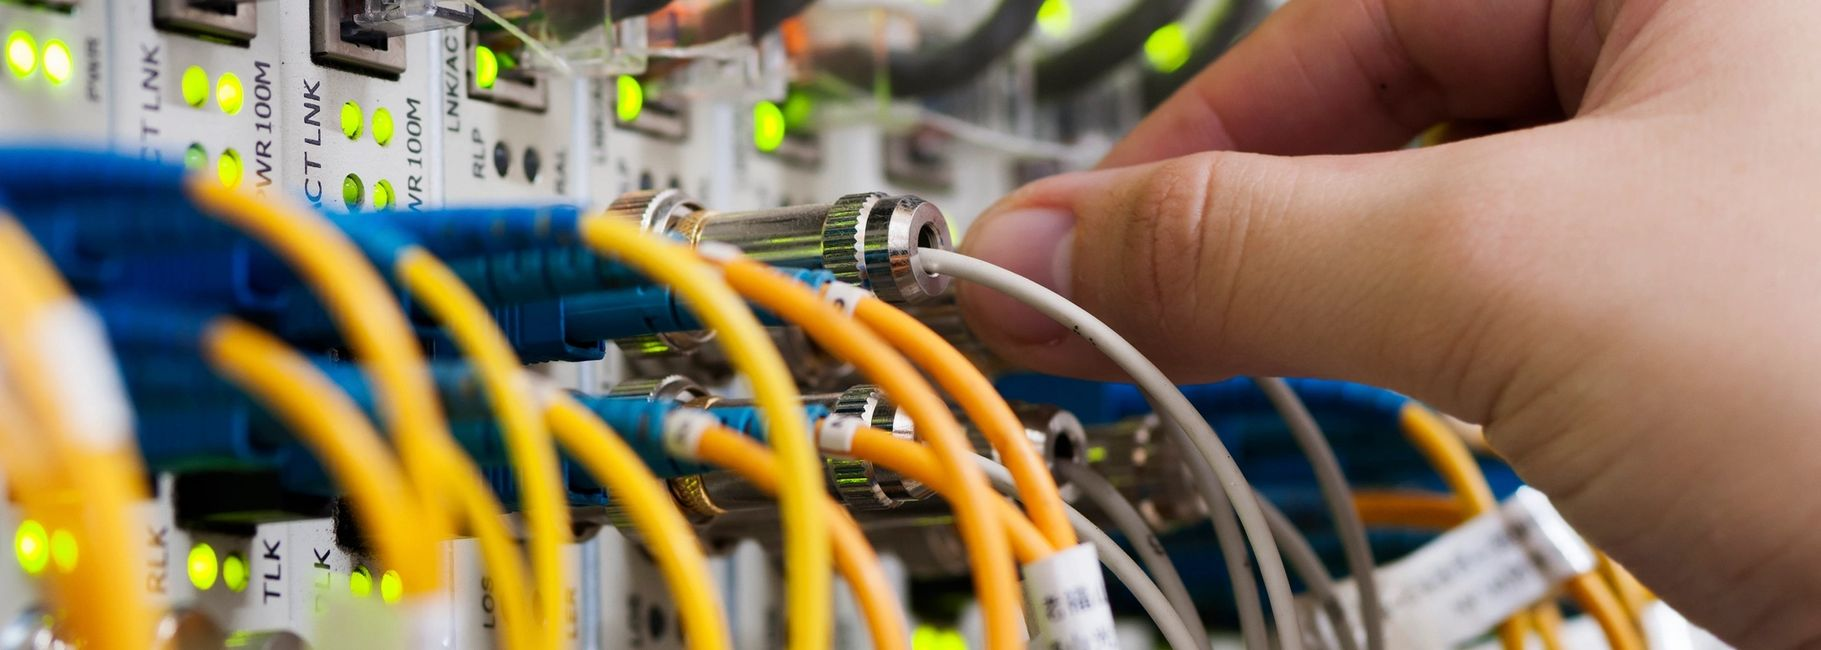 Network cabling and interfaces